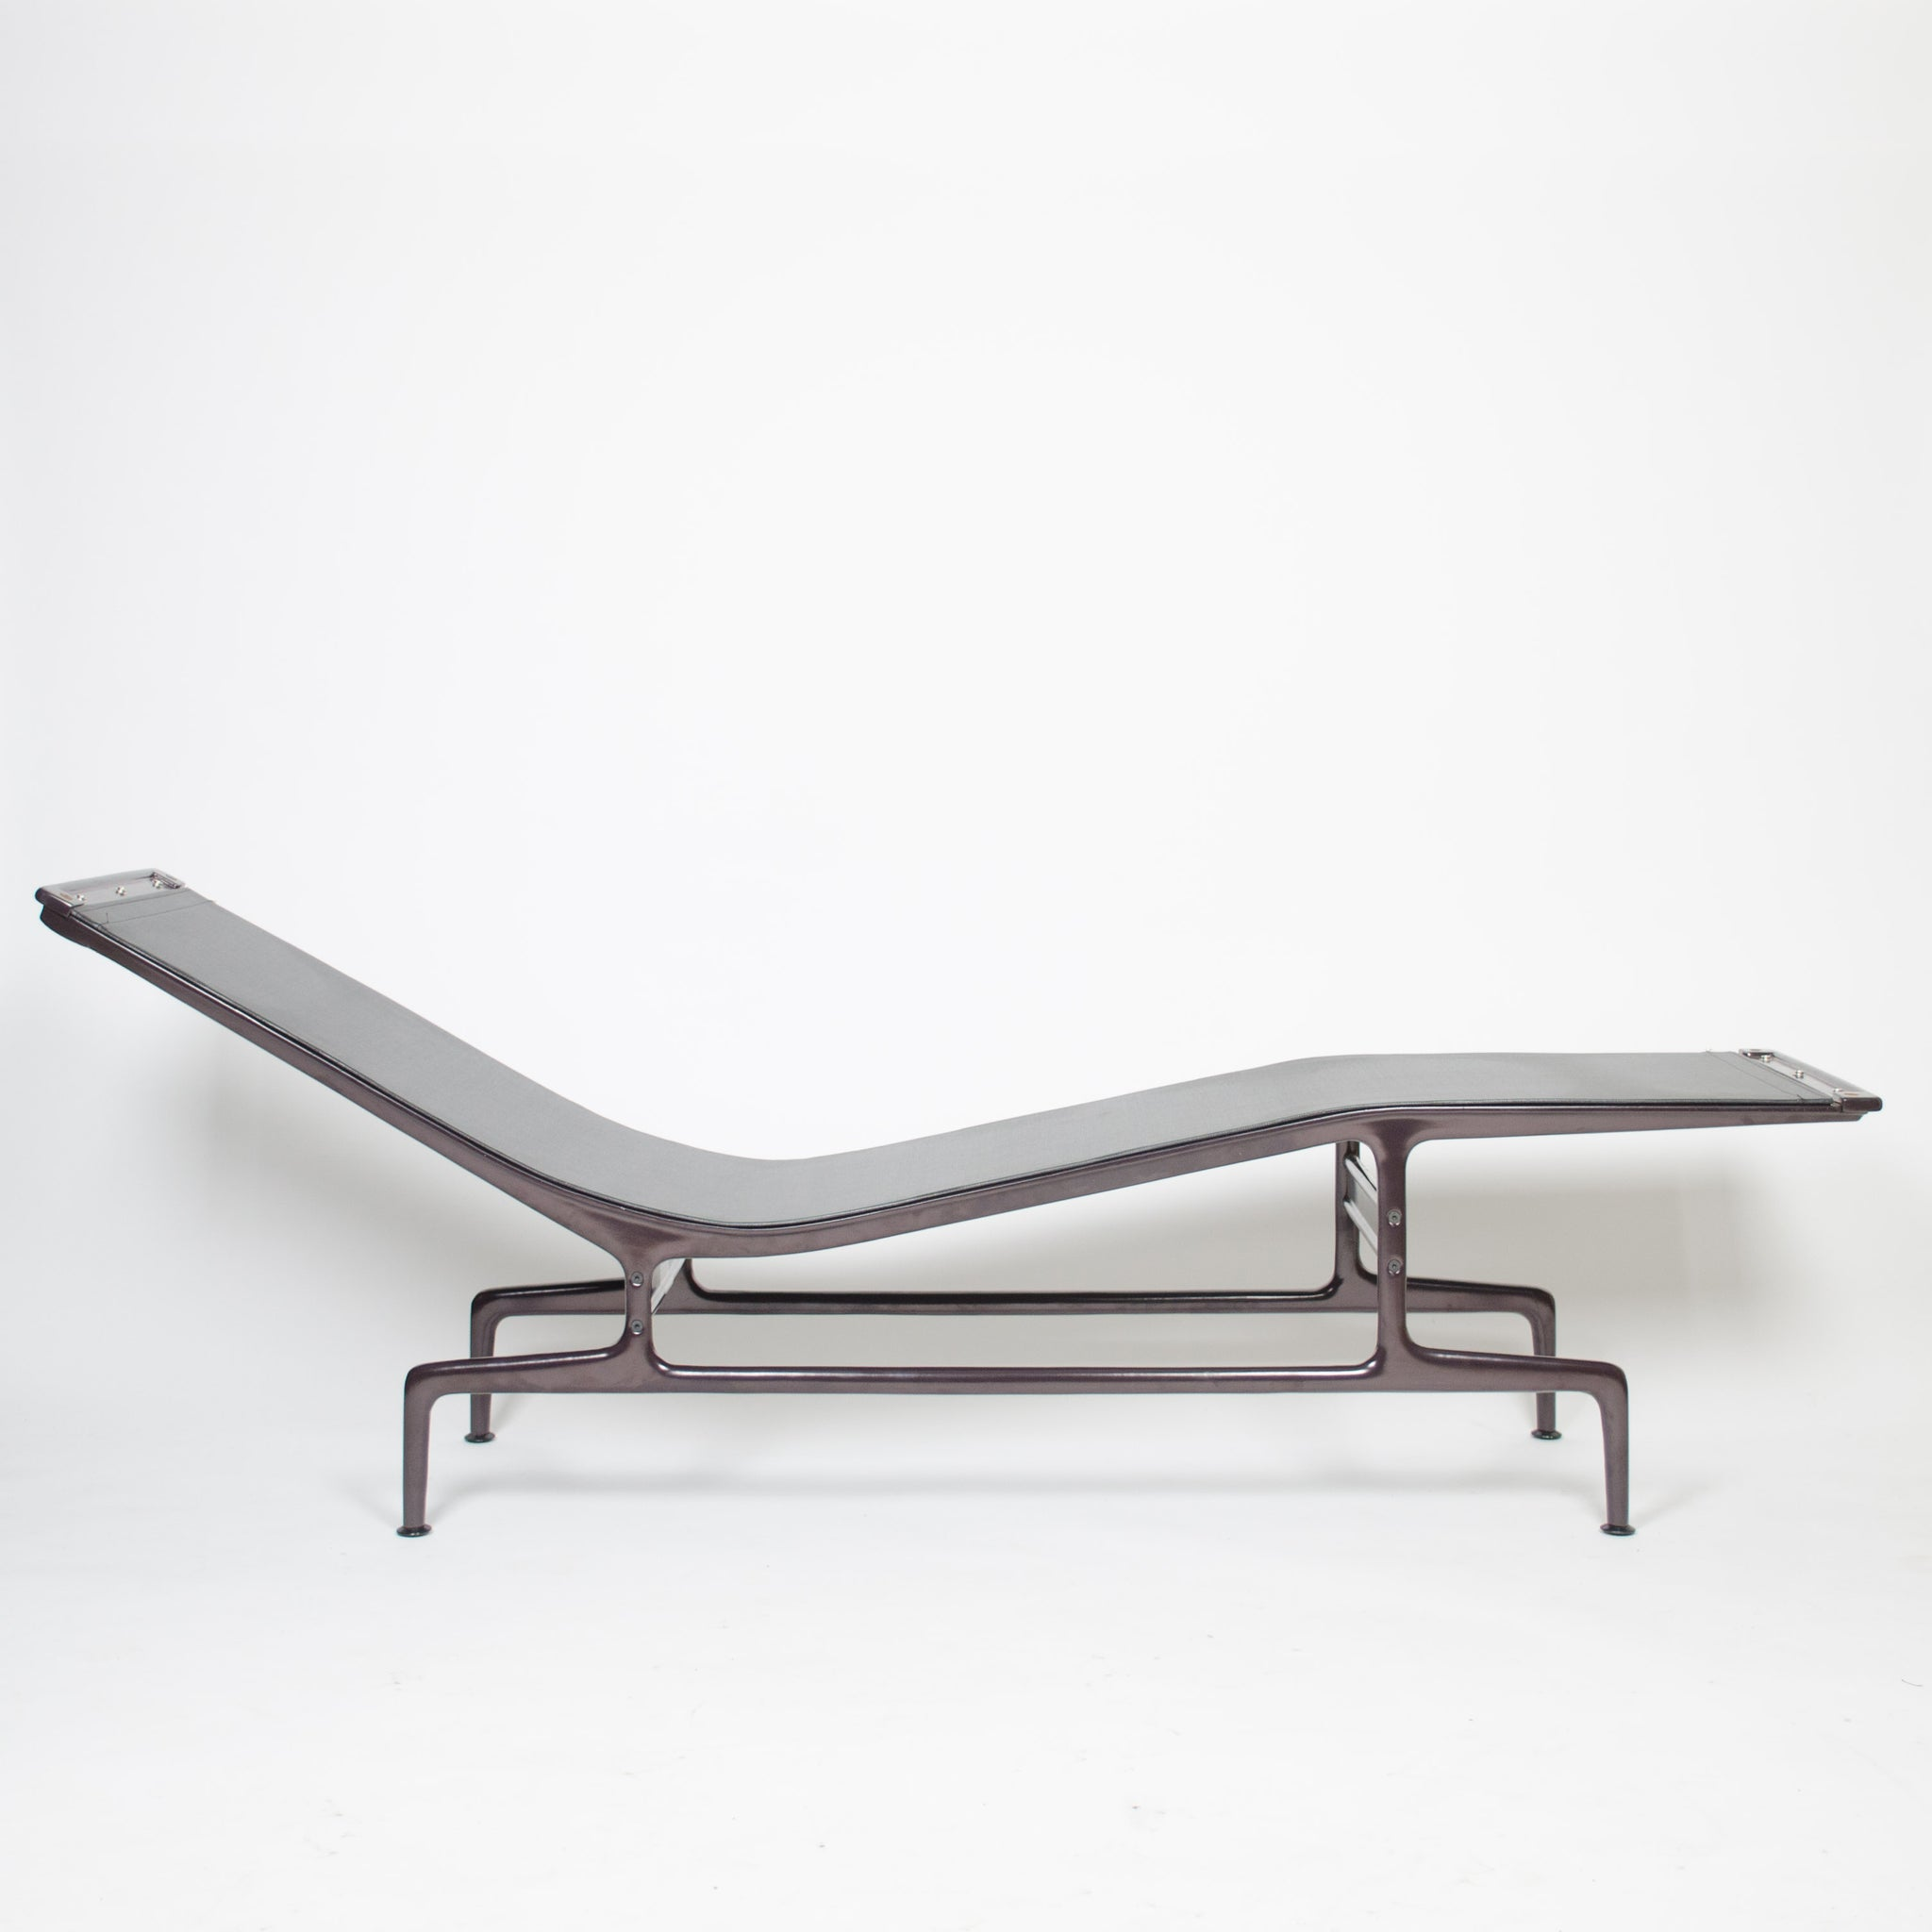 SOLD Eames Herman Miller Billy Wilder Gray and Eggplant Chaise Lounge Chair MINT